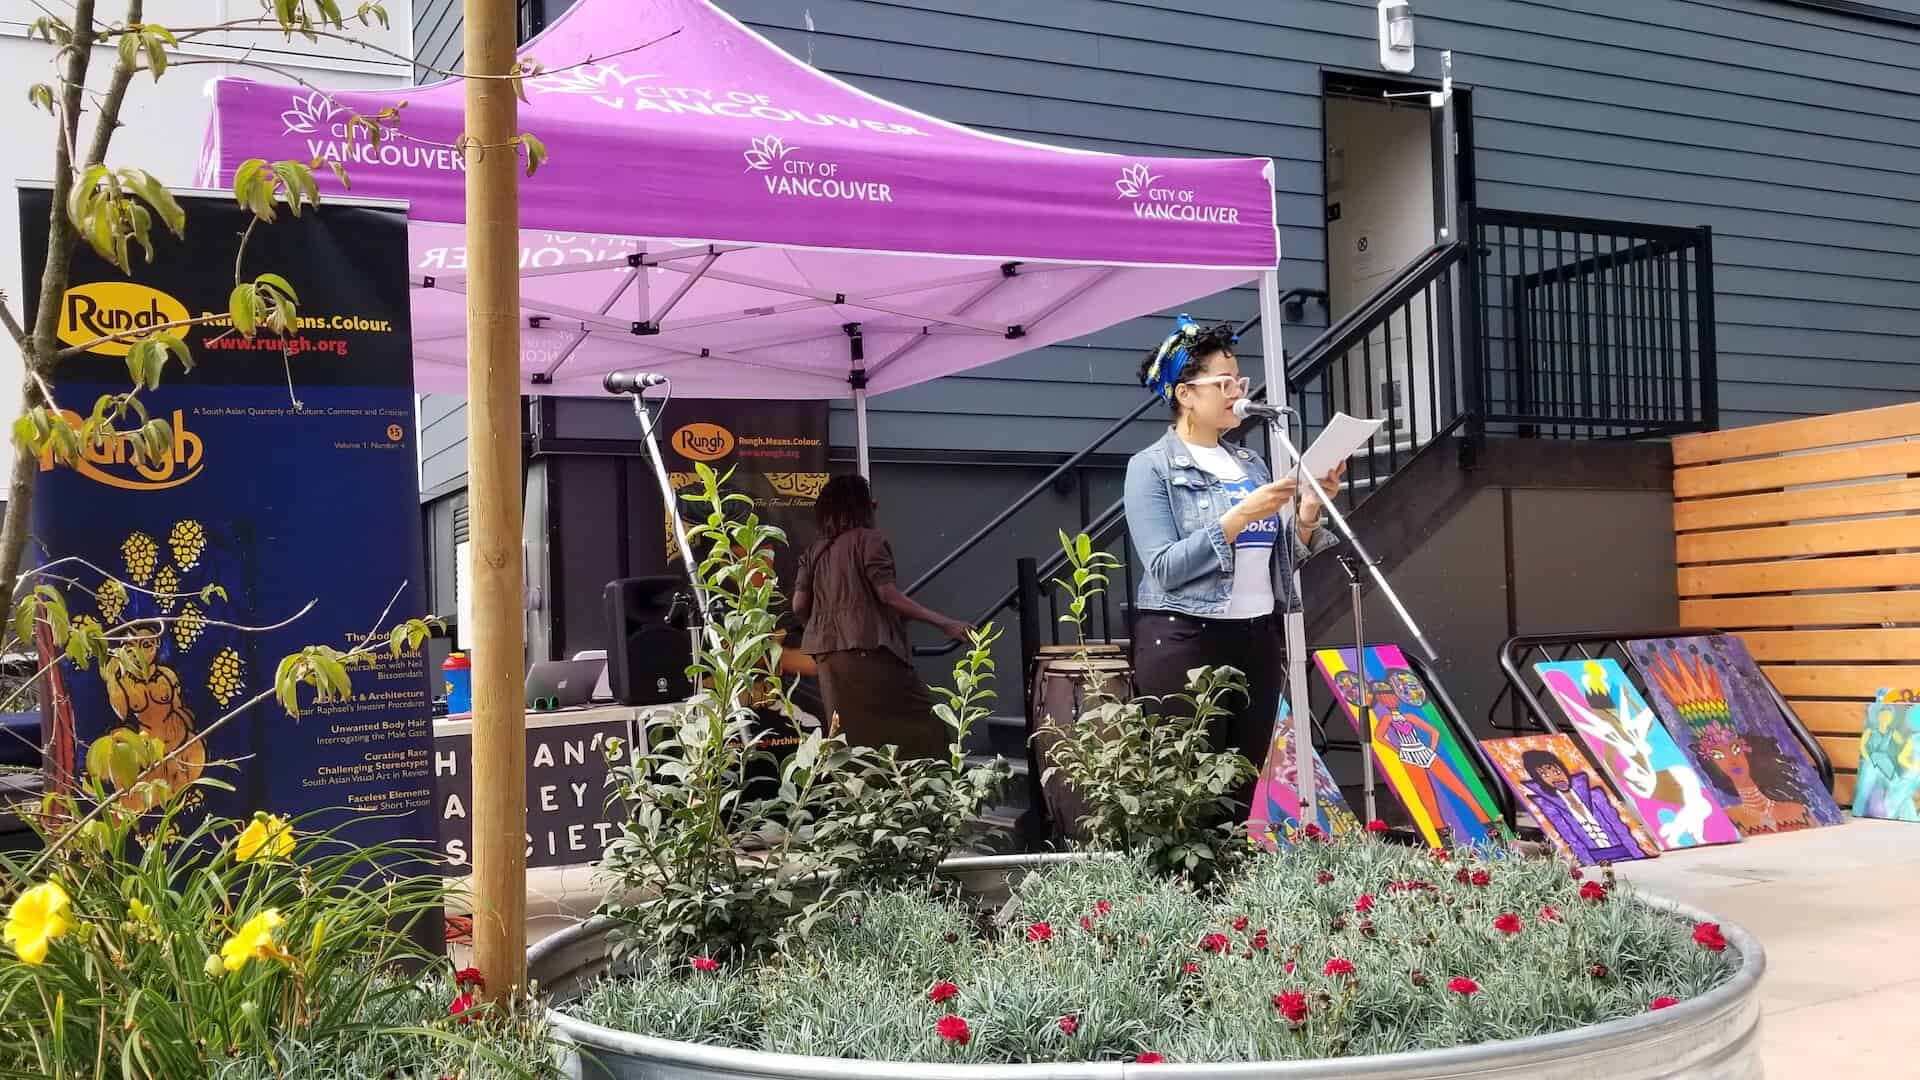 Summer Block Party: Rungh Readings With Hogan's Alley Society 2